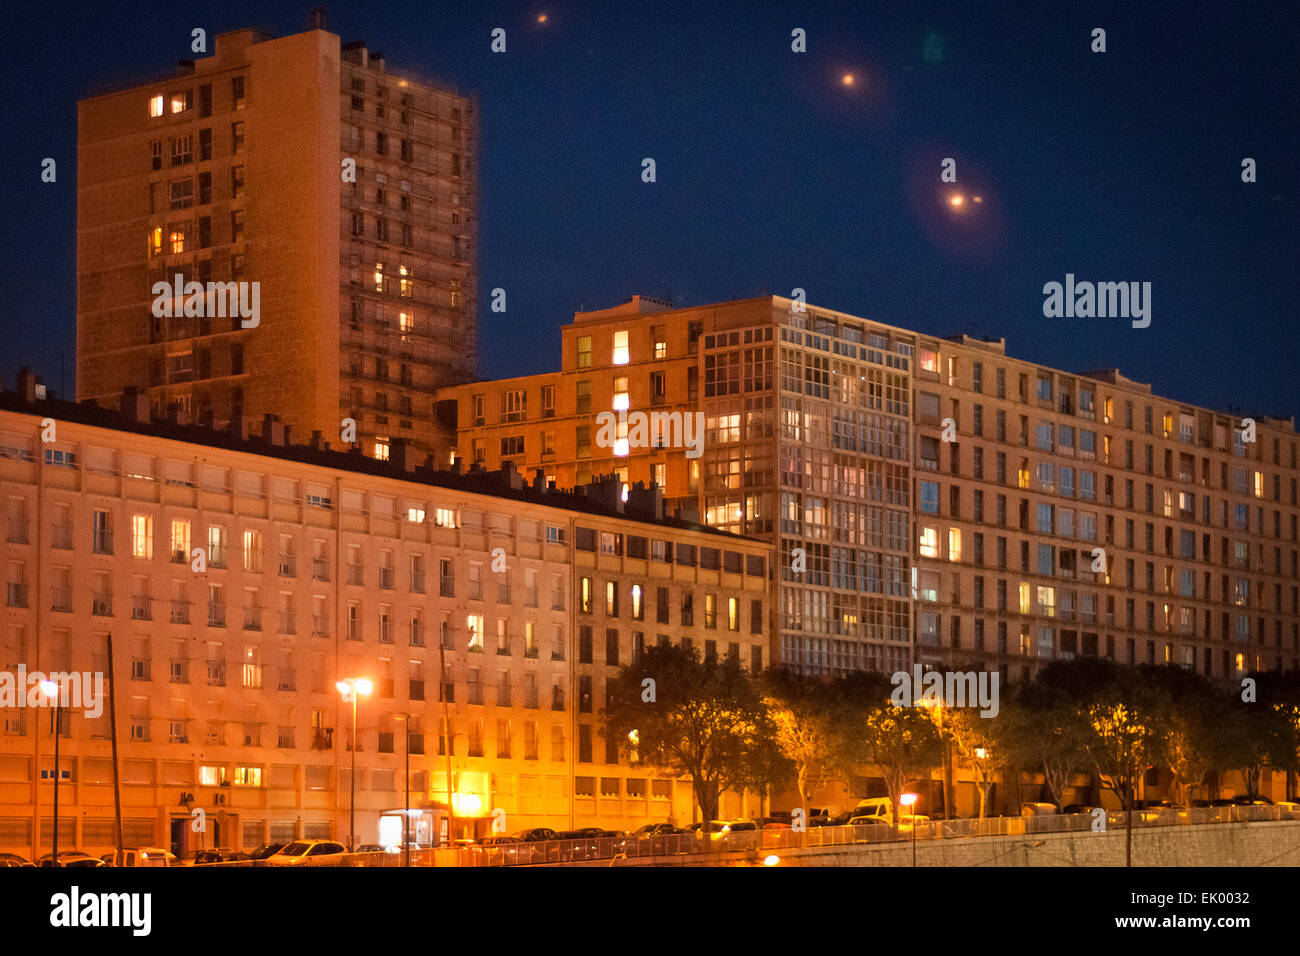 Night time architecture buildings, Marseille, France. - Stock Image